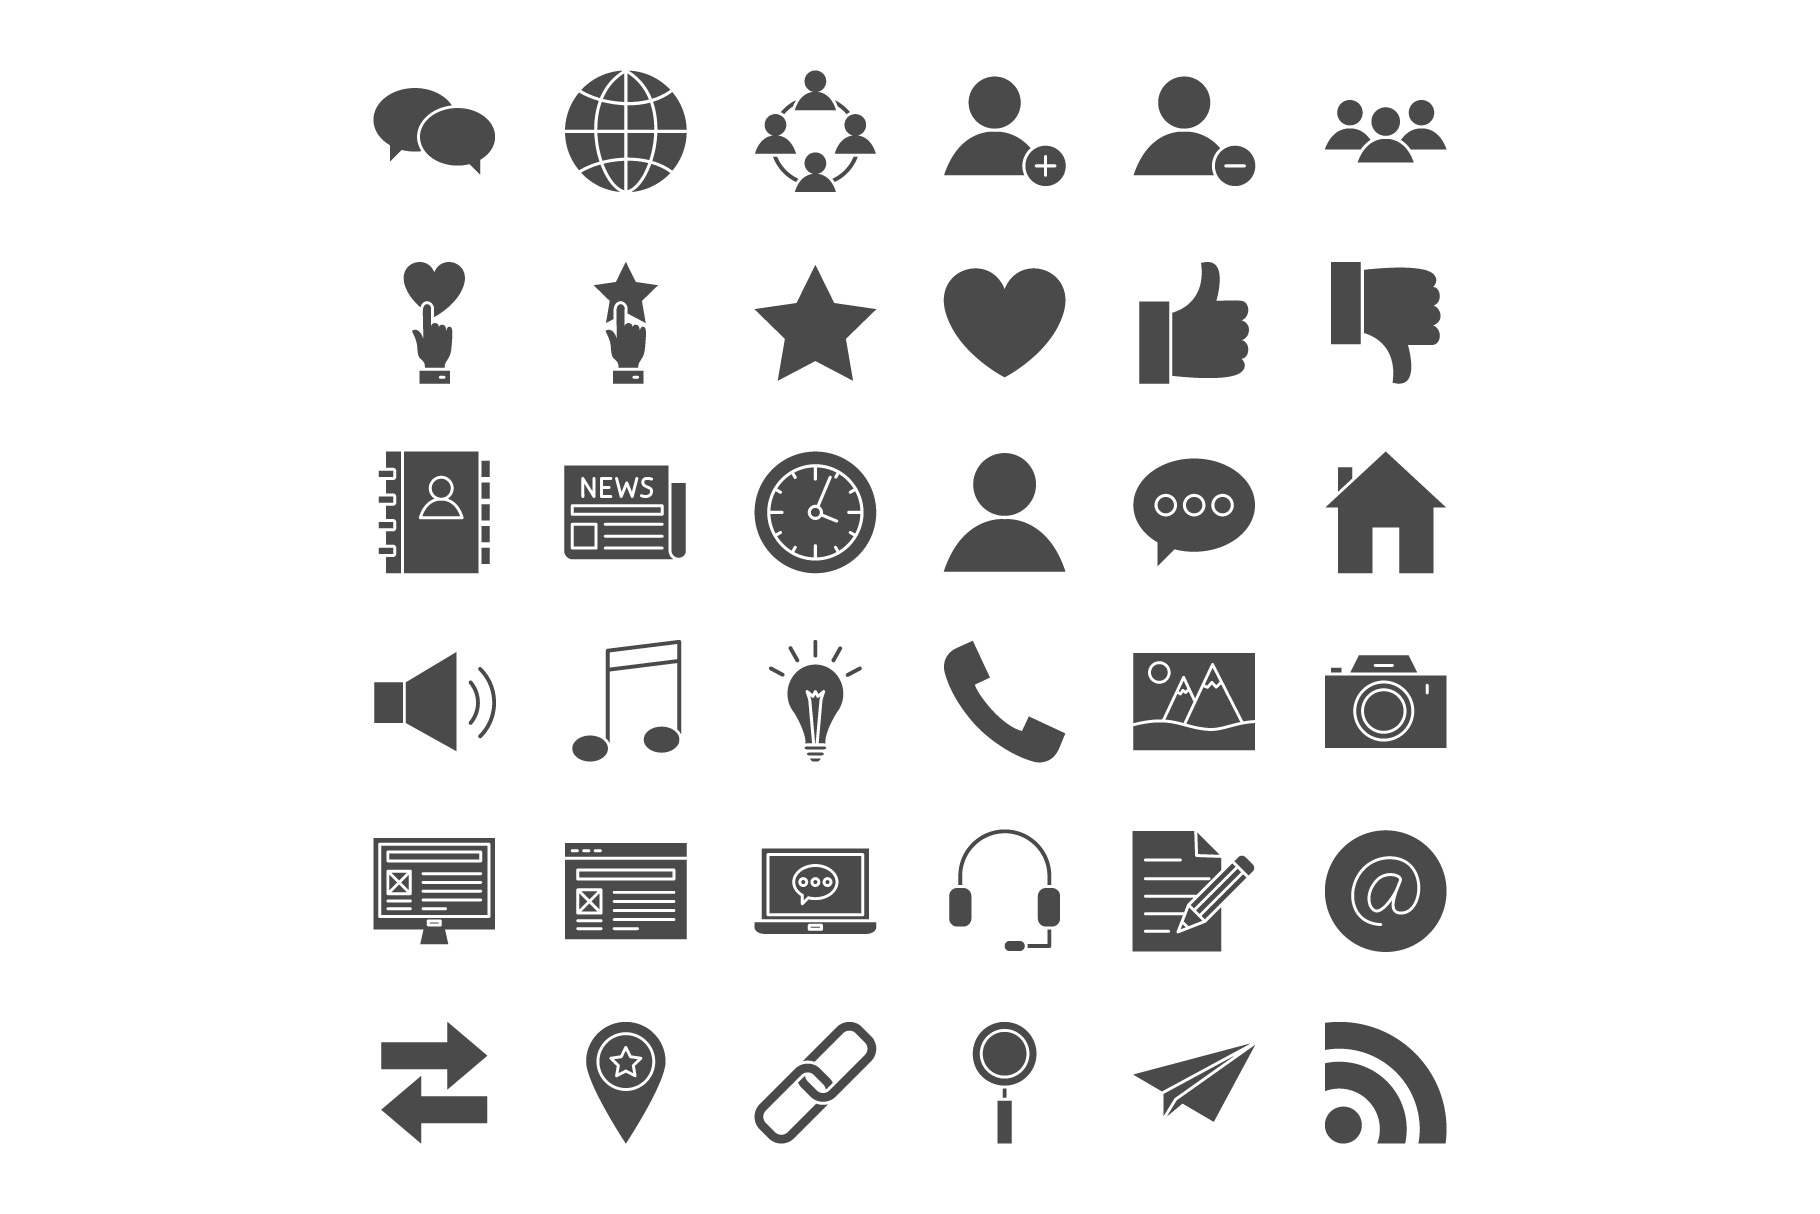 Social Media Line Art Icons example image 2